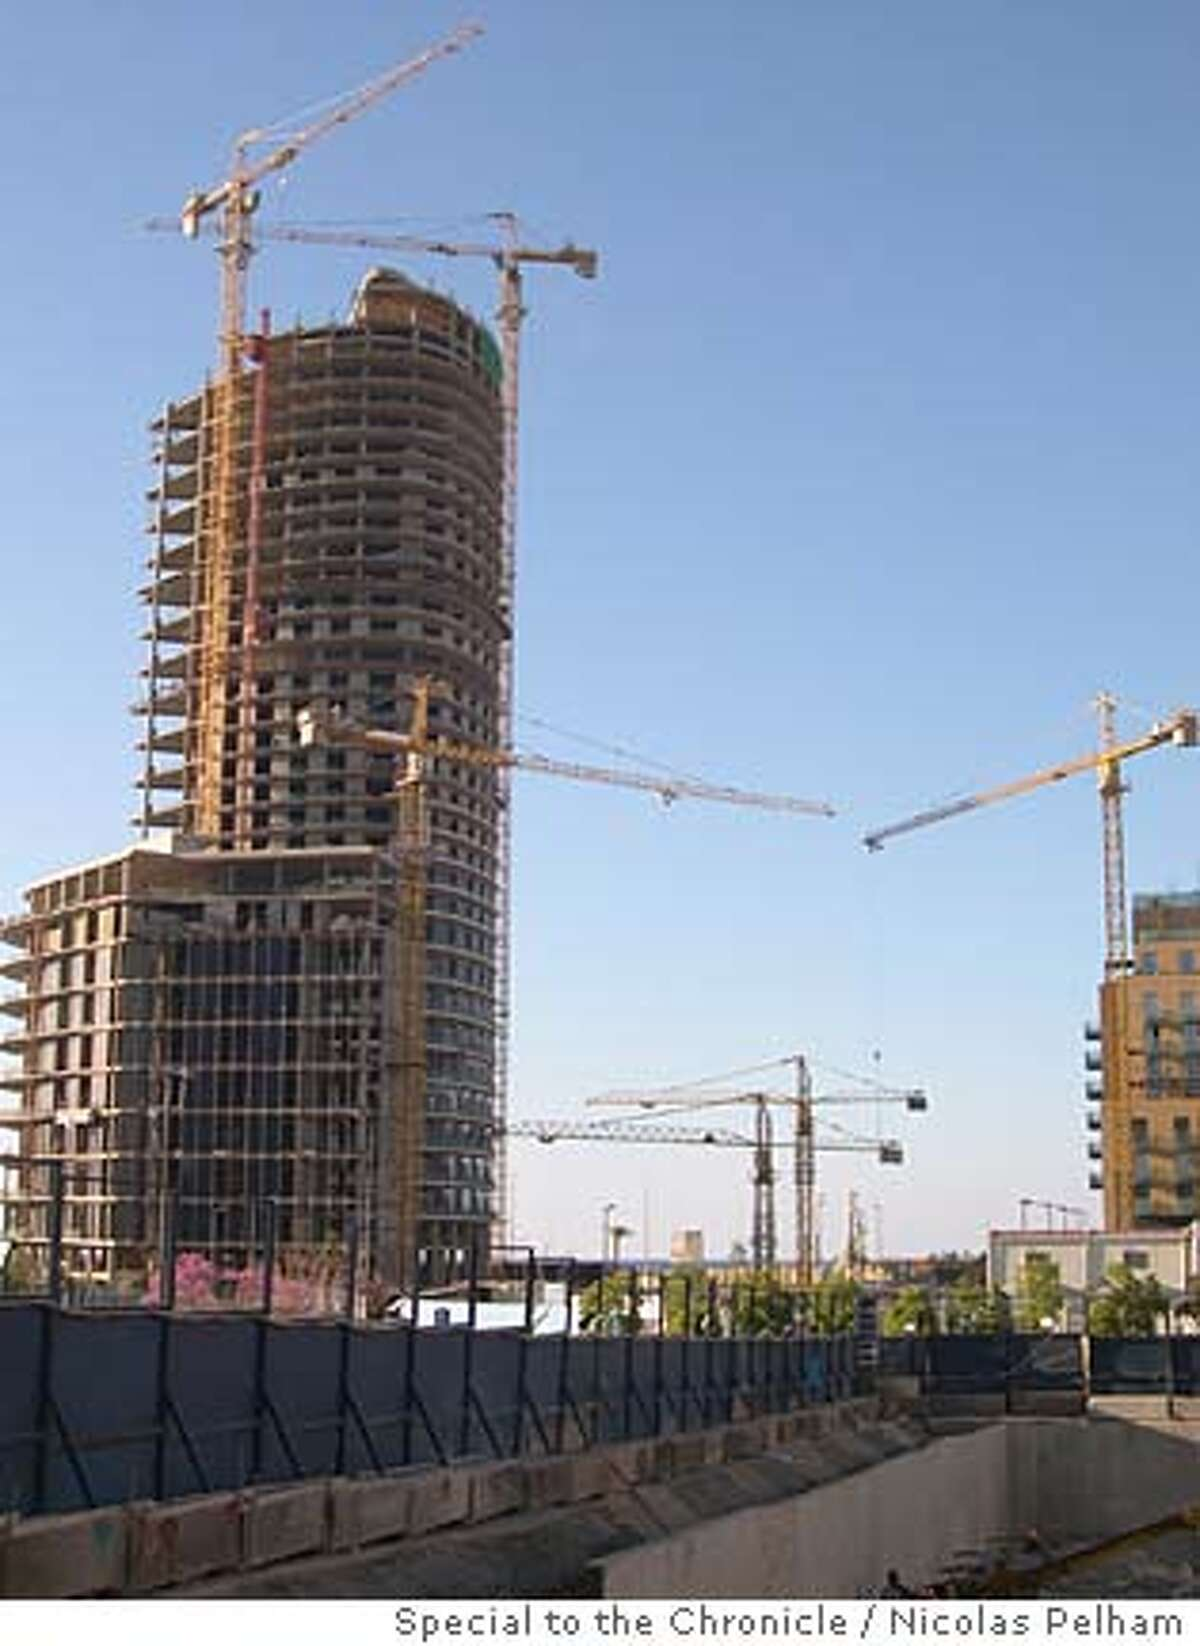 Cranes overhanging an apartment block shot from the foundations of the Hilton Hotel in downtown Beirut. Photo by Nicolas Pelham/Special to the Chronicle